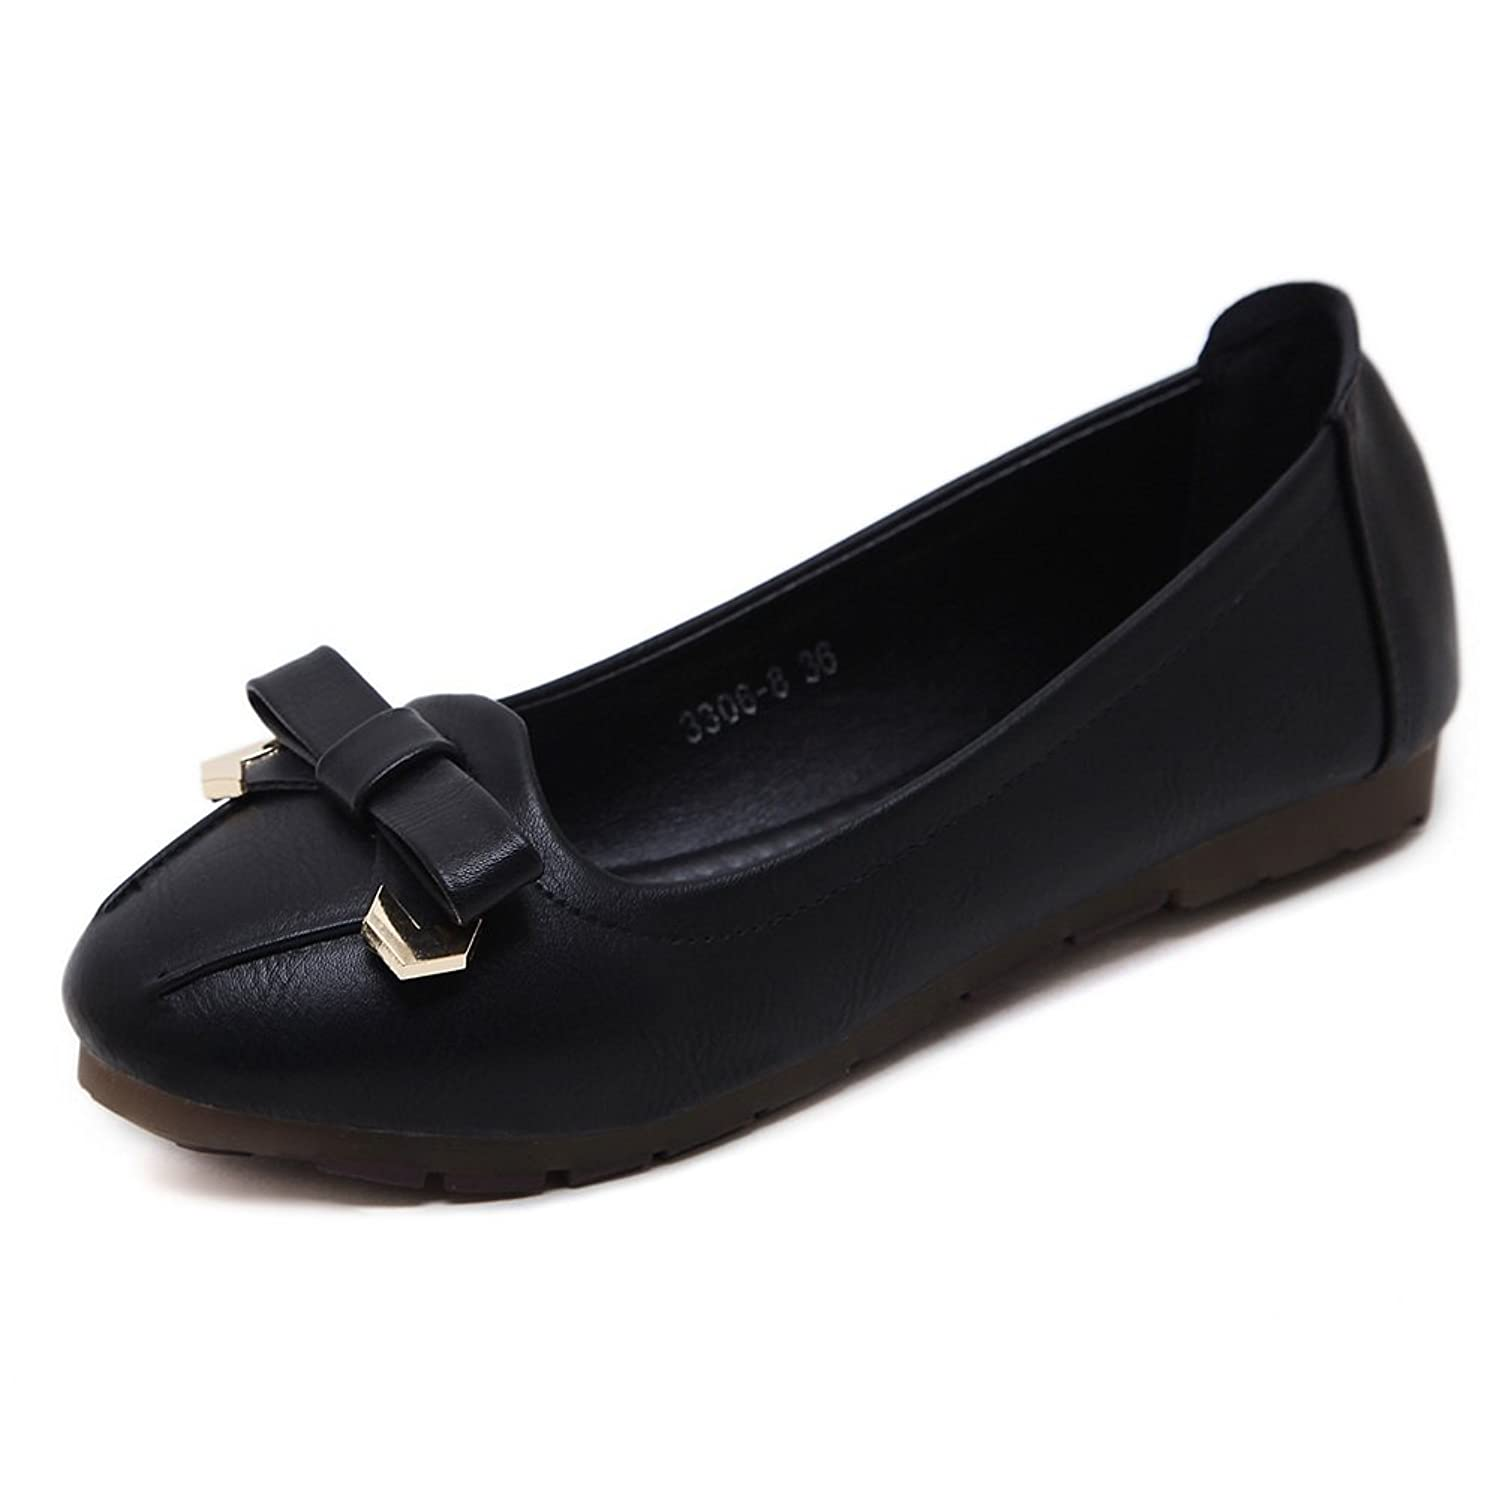 AdeeSu Womens Bows Low-Cut Uppers Round-Toe Urethane Flats Shoes